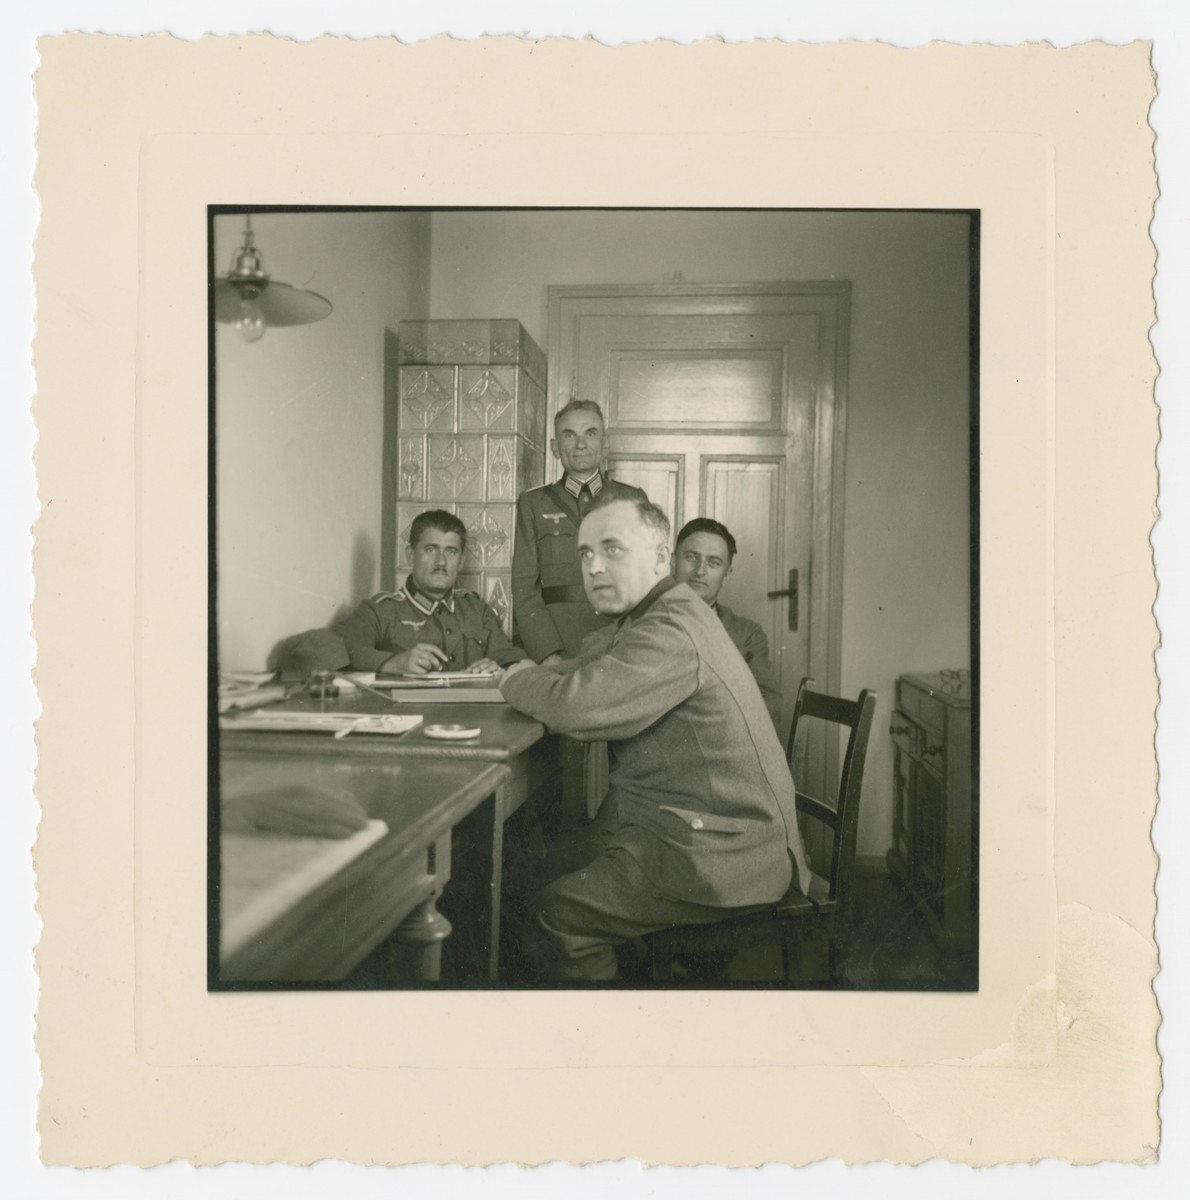 German soldiers sit in a newly established office in Oswiecim days less than two weeks after the start of World War II.